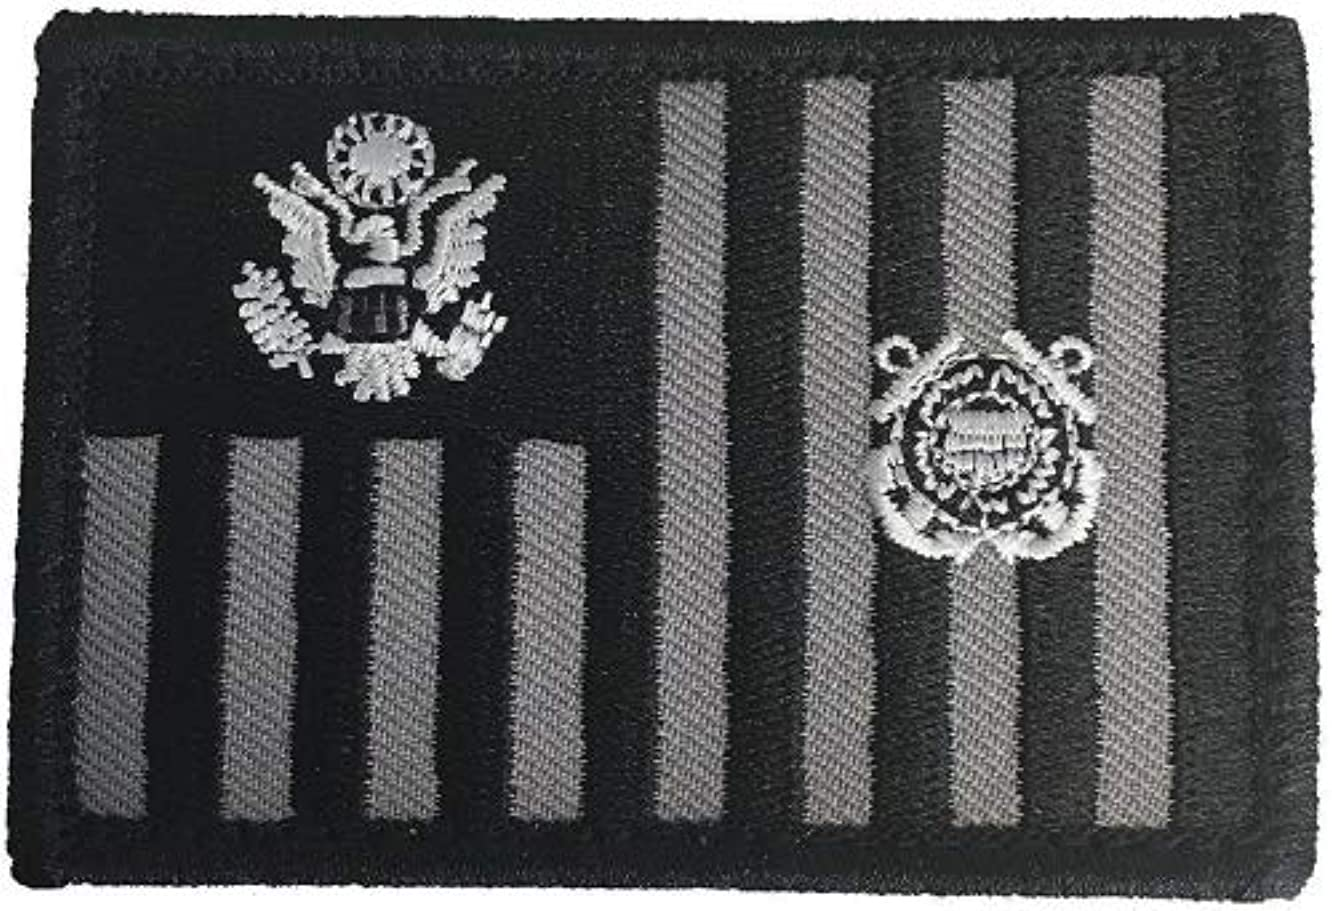 USCG Subdued Ensign - Morale Patch